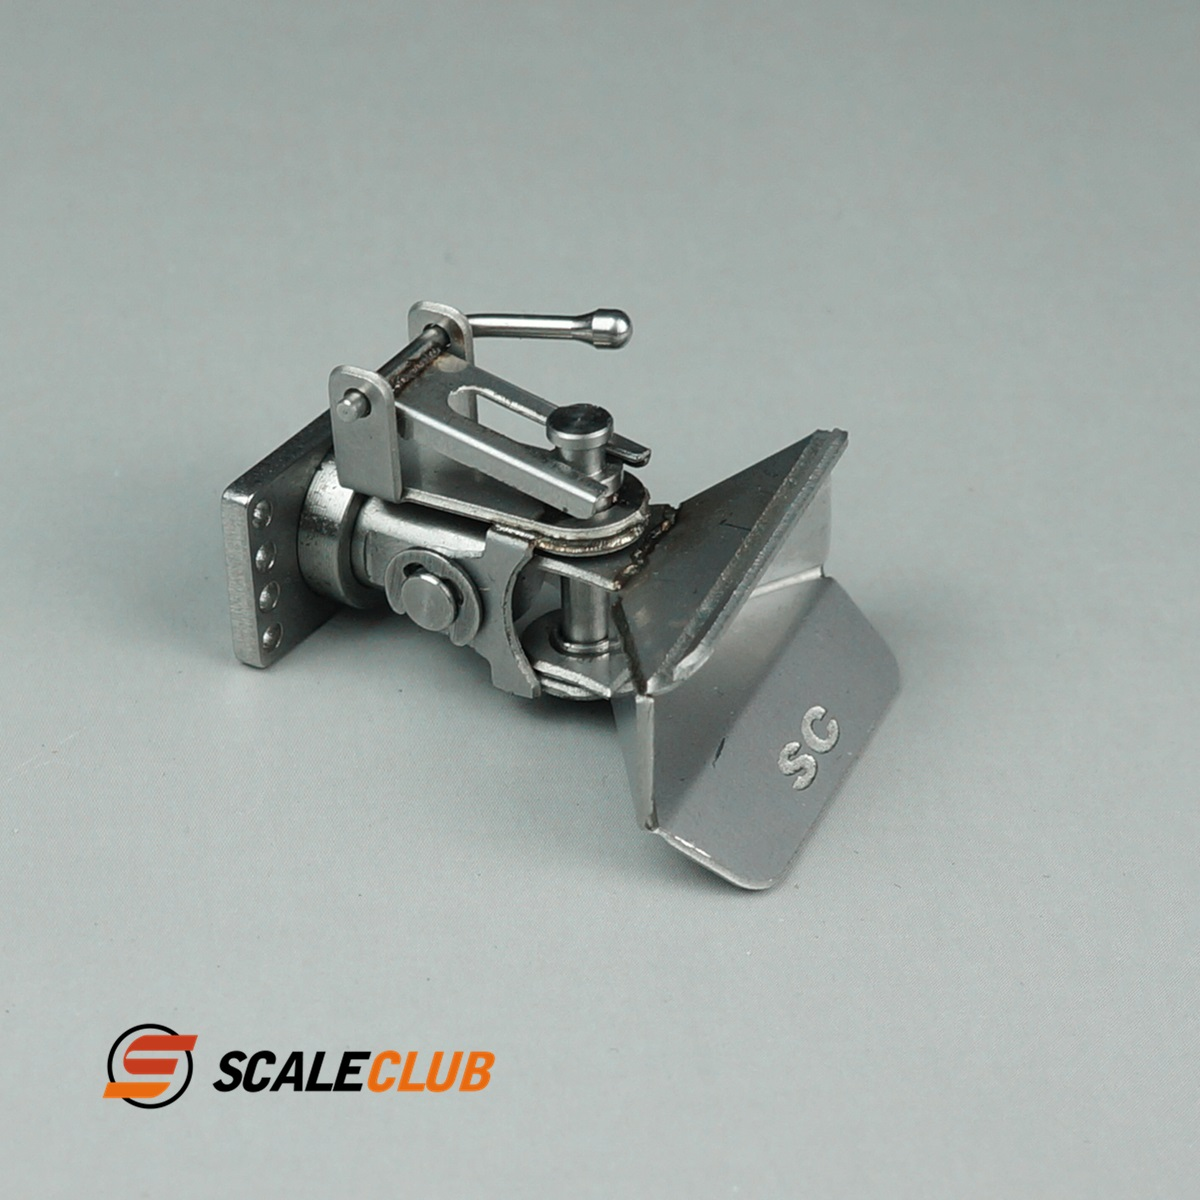 SCALECLUB  1/14 Universal  Horn-mouthed trailer coupler traction hook